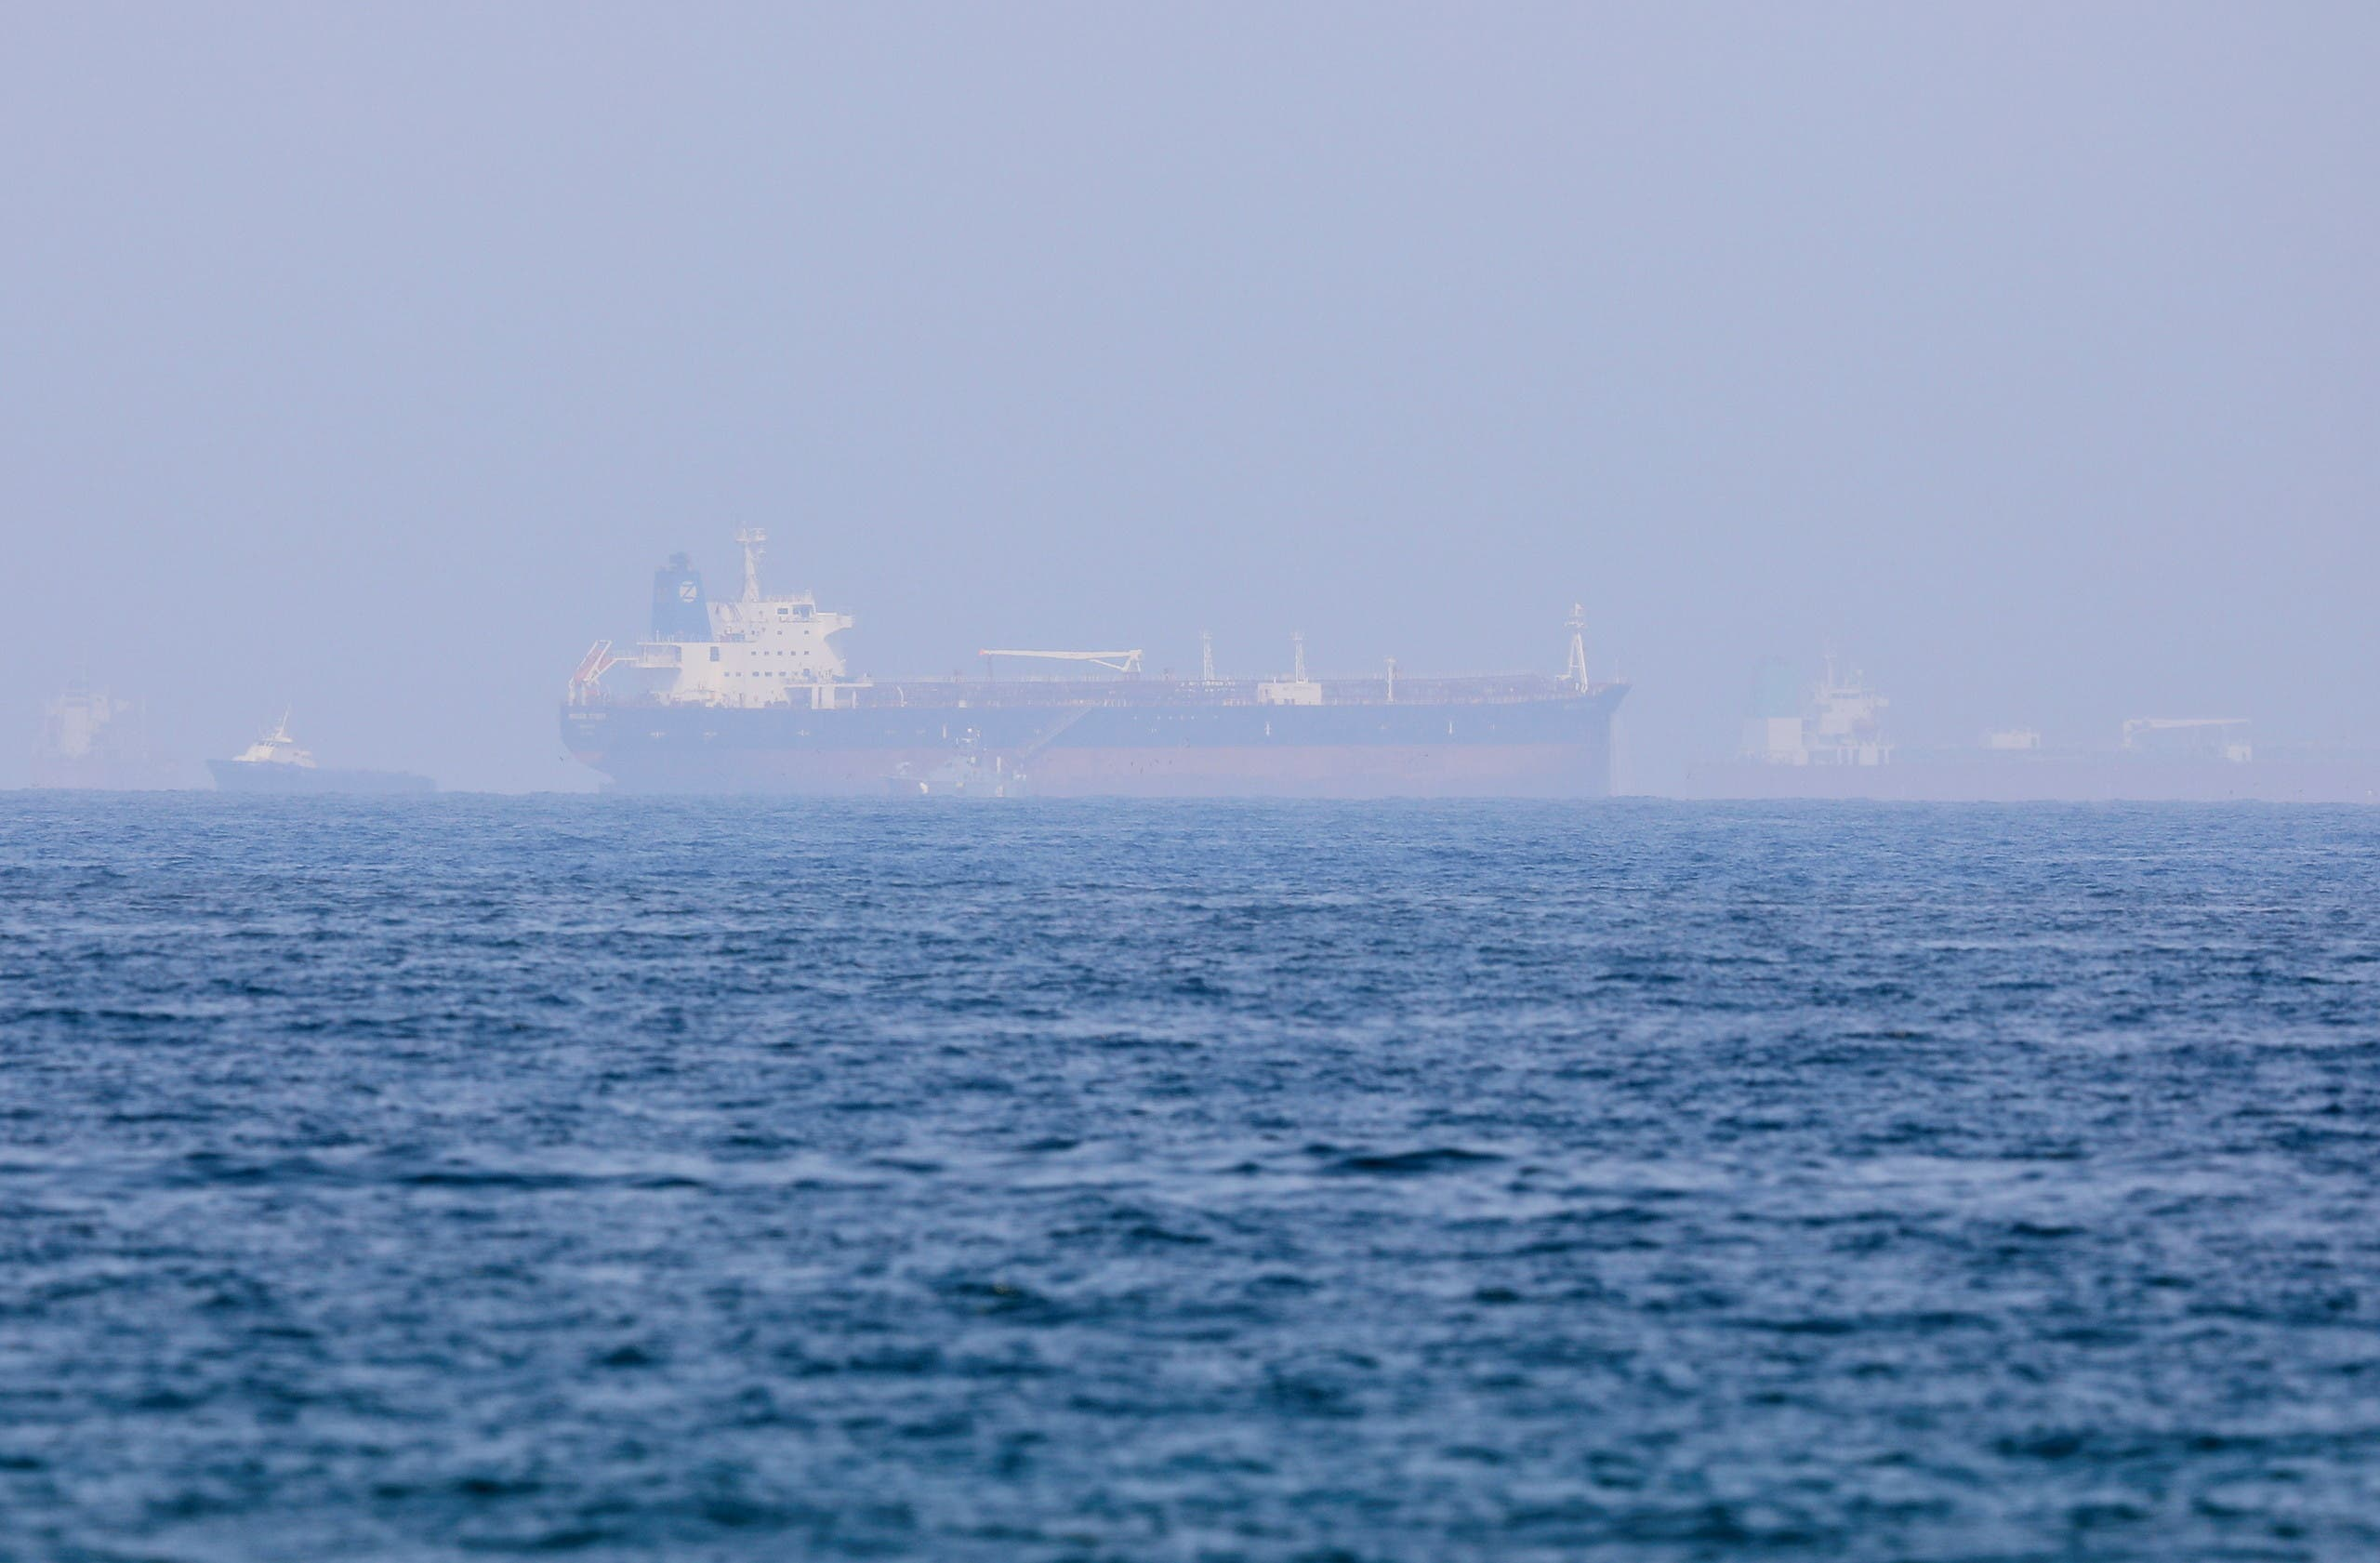 Ships including the Mercer Street, an Israeli-managed oil tanker are seen off Fujairah Port in United Arab Emirates, August 3, 2021. (Reuters)